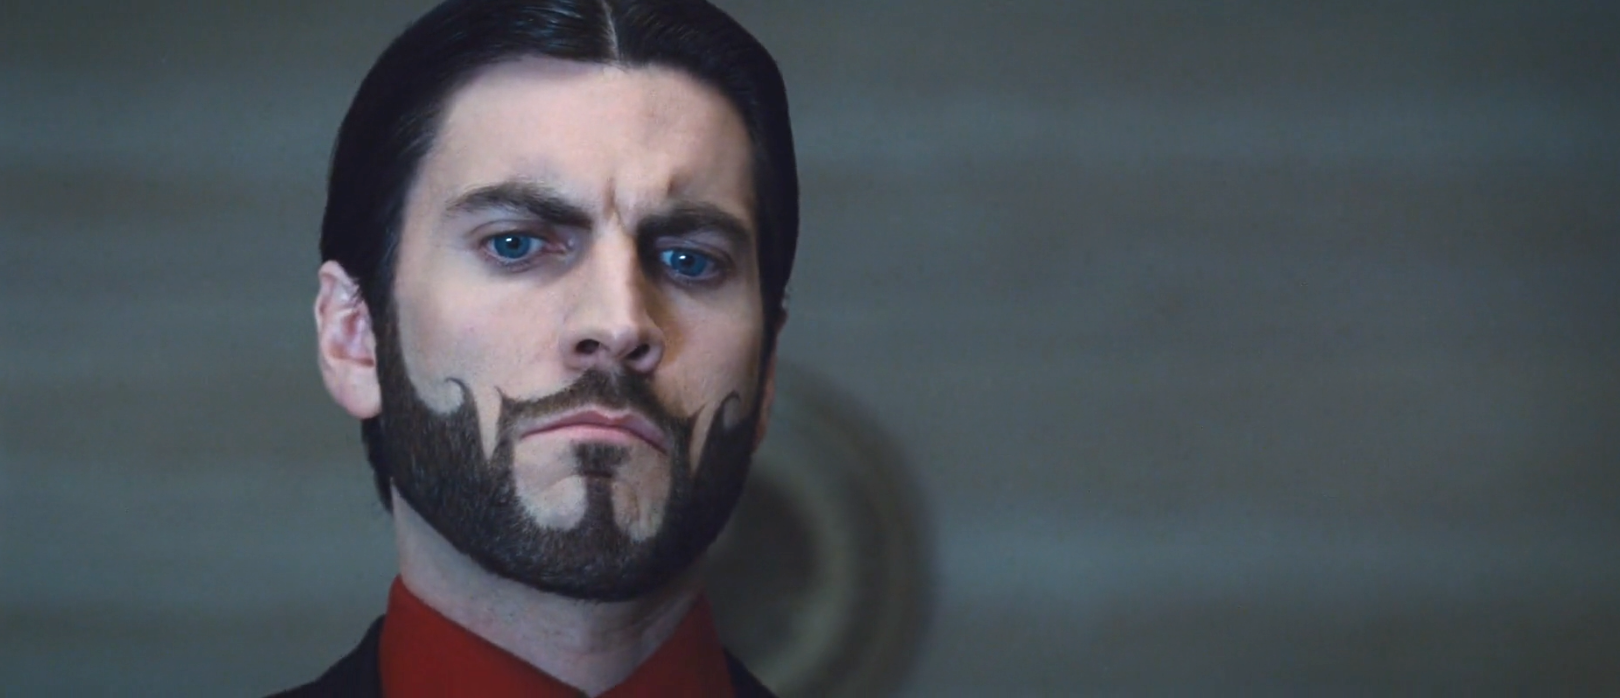 Wes Bentley as Seneca Crane in the hungergames crazy facial hair